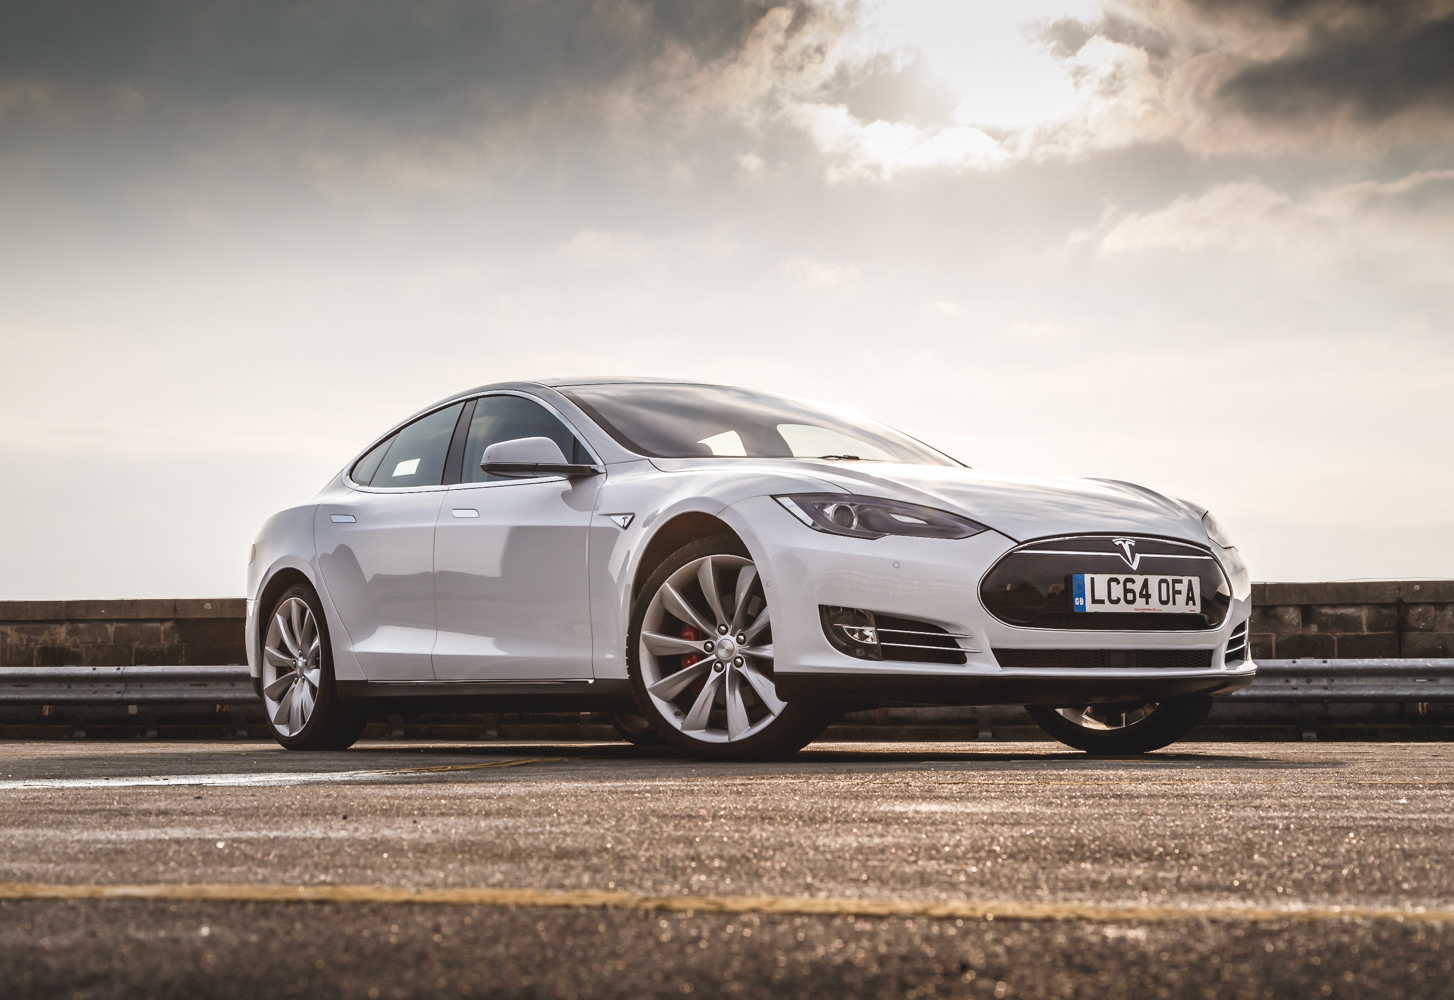 Awd Electric Car >> Driven: Tesla Model S P85 Review